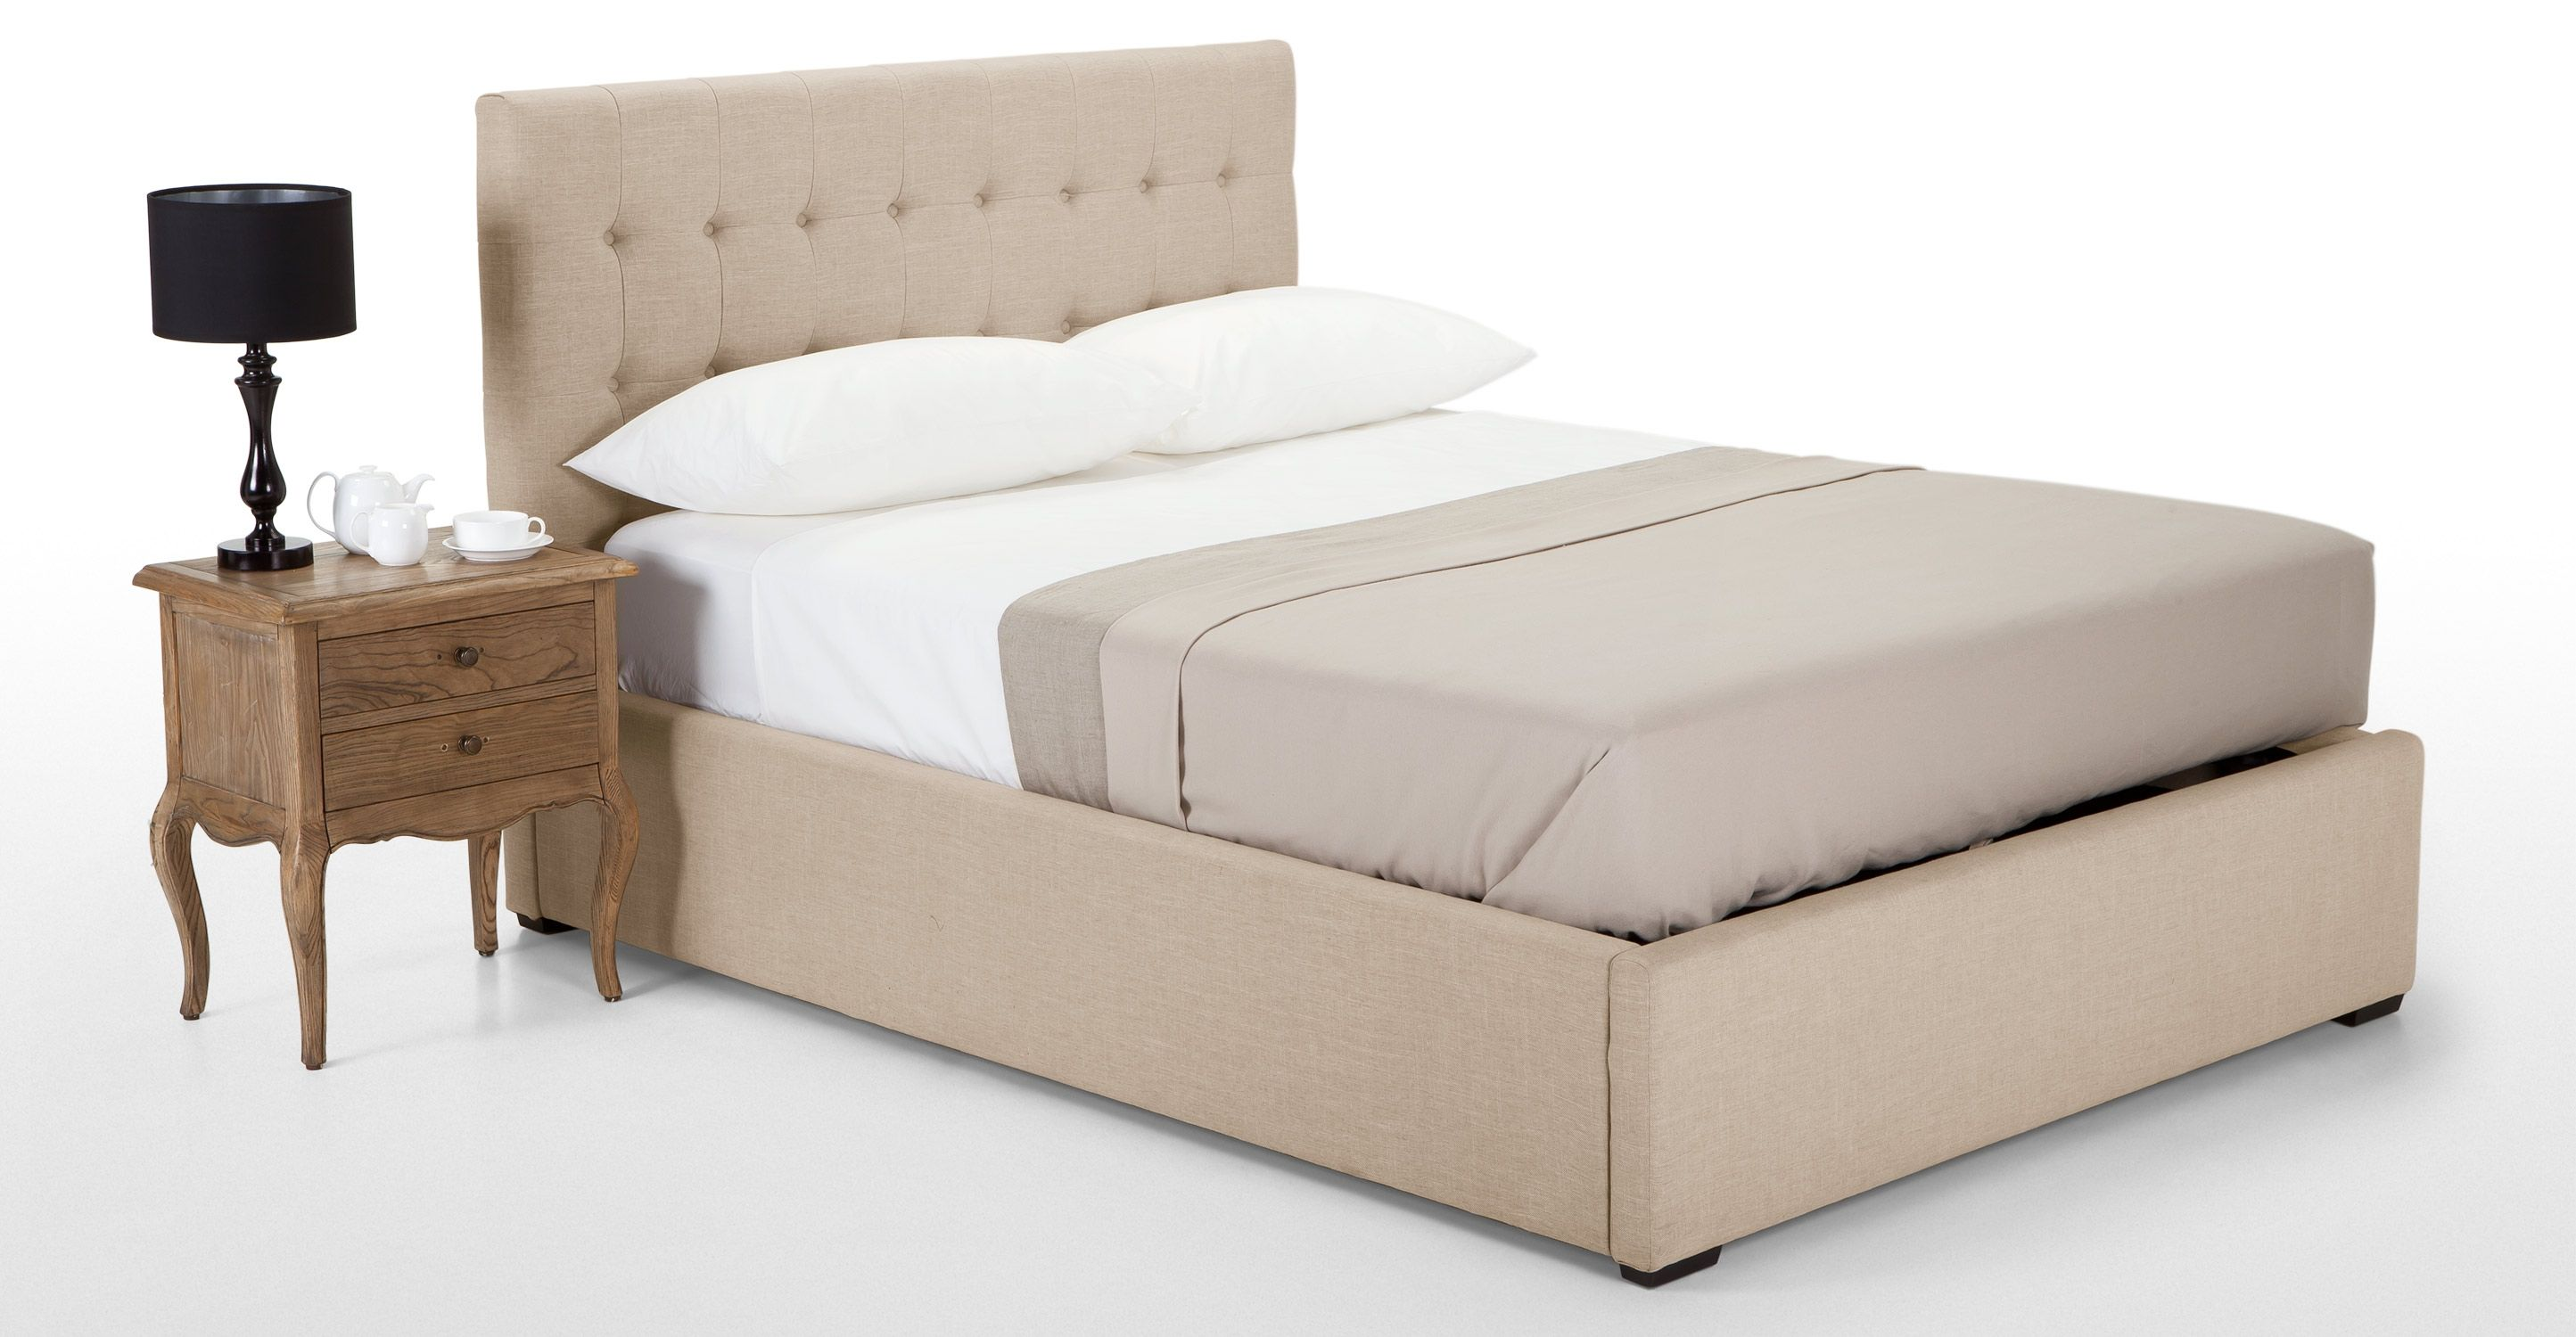 Finlay 140cm x 200cm Double Bed with Storage in biscuit